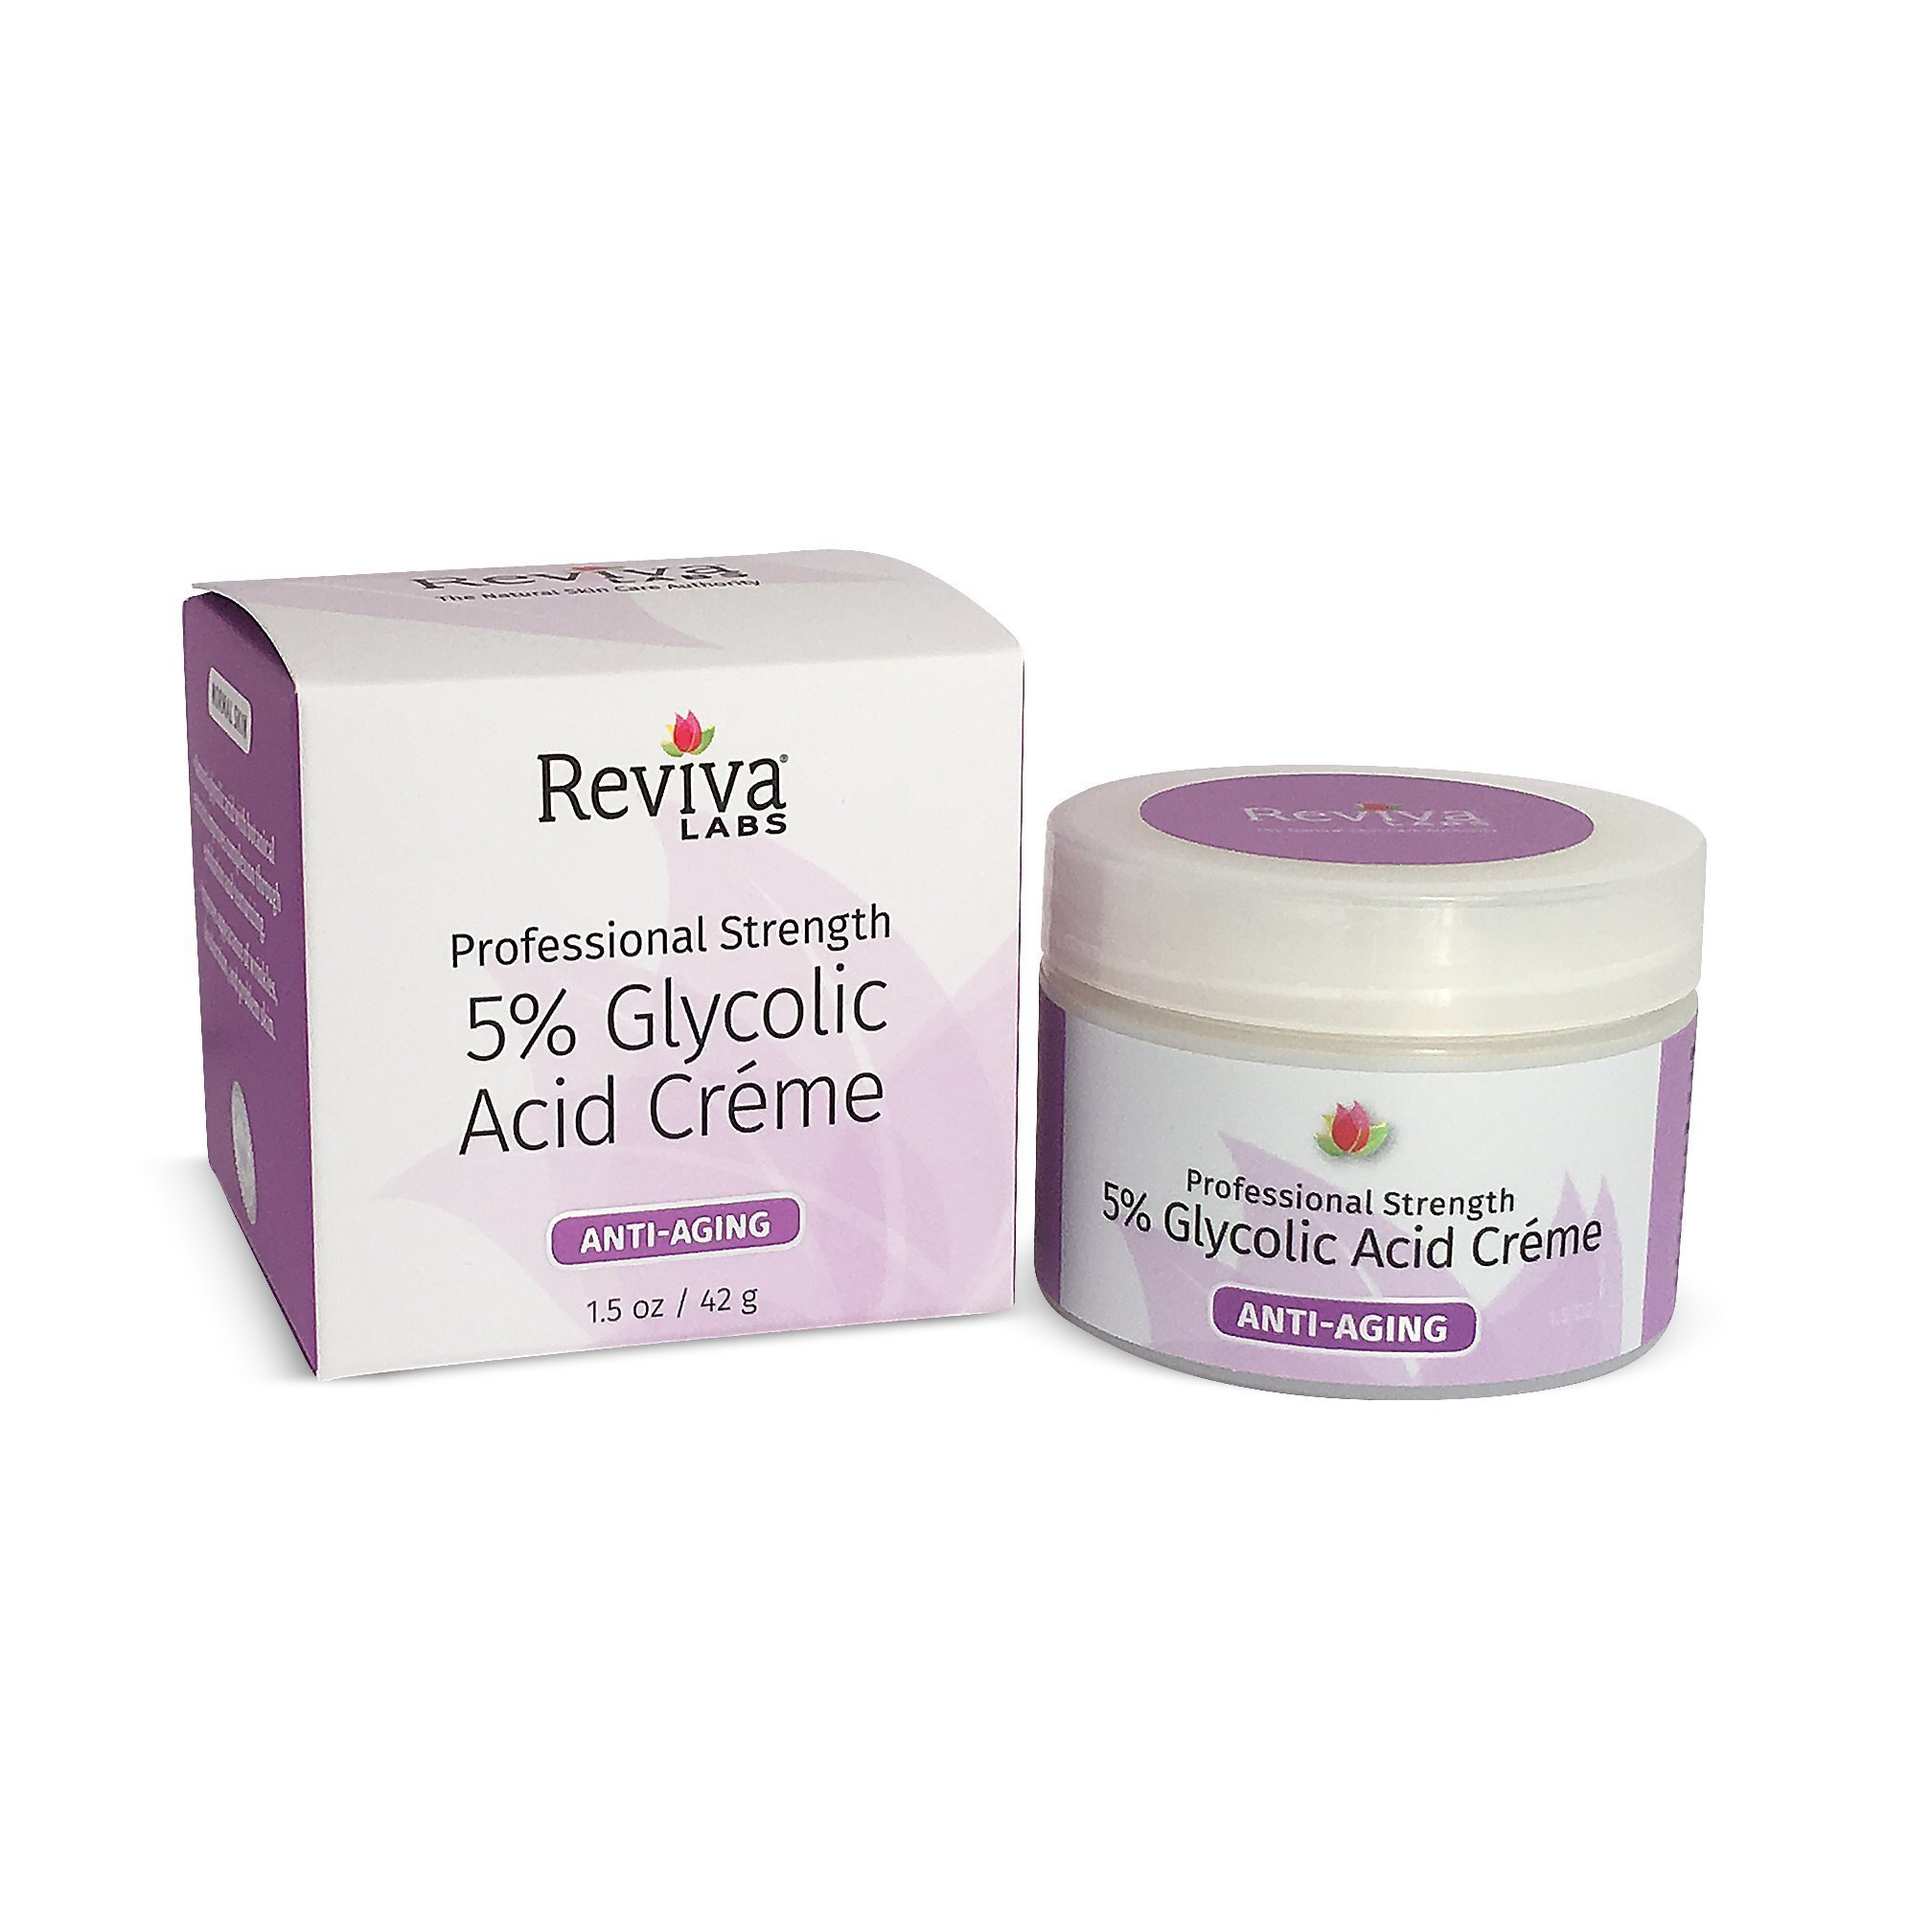 Reviva Labs 5% Glycolic Acid Cream, 1.5 oz.